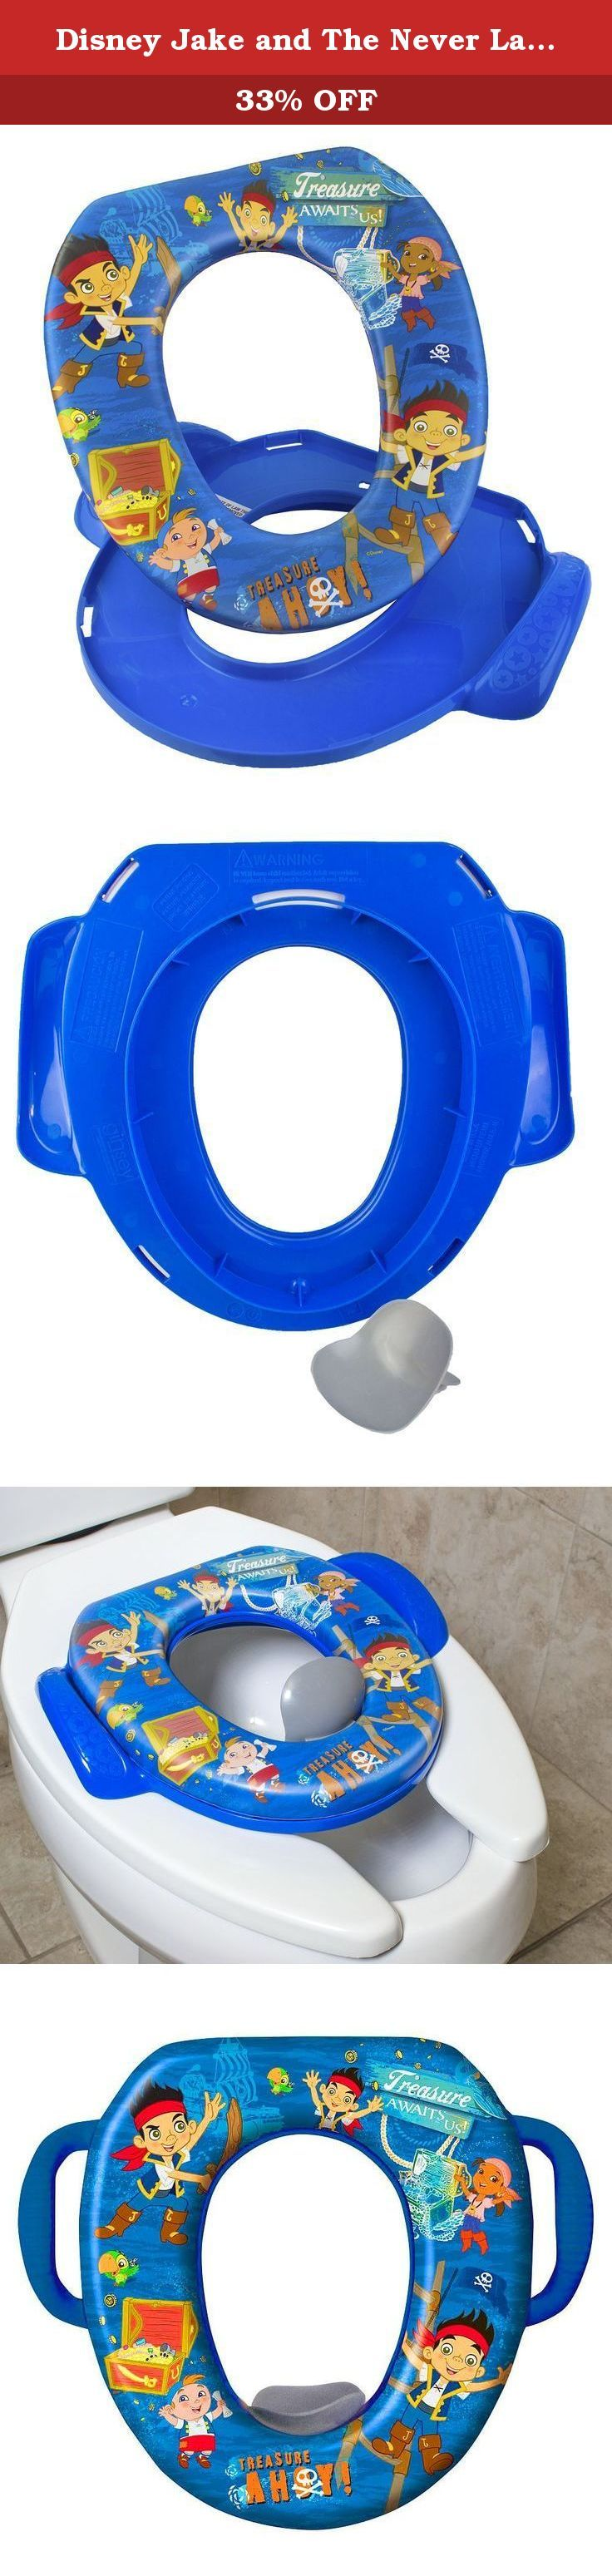 Disney Jake and The Never Land Pirates Potty Seat , Blue. Make potty training fun with this Jake & the Neverland Pirates Soft Potty. Featuring a durable construction made in the USA, each soft & cushy seat top features your favorite Disney characters. Easy grip side handles provide extra stability for your child. Removable cushion allows for easy cleaning. Each seat fits securely on both regular & elongated toilet seats.